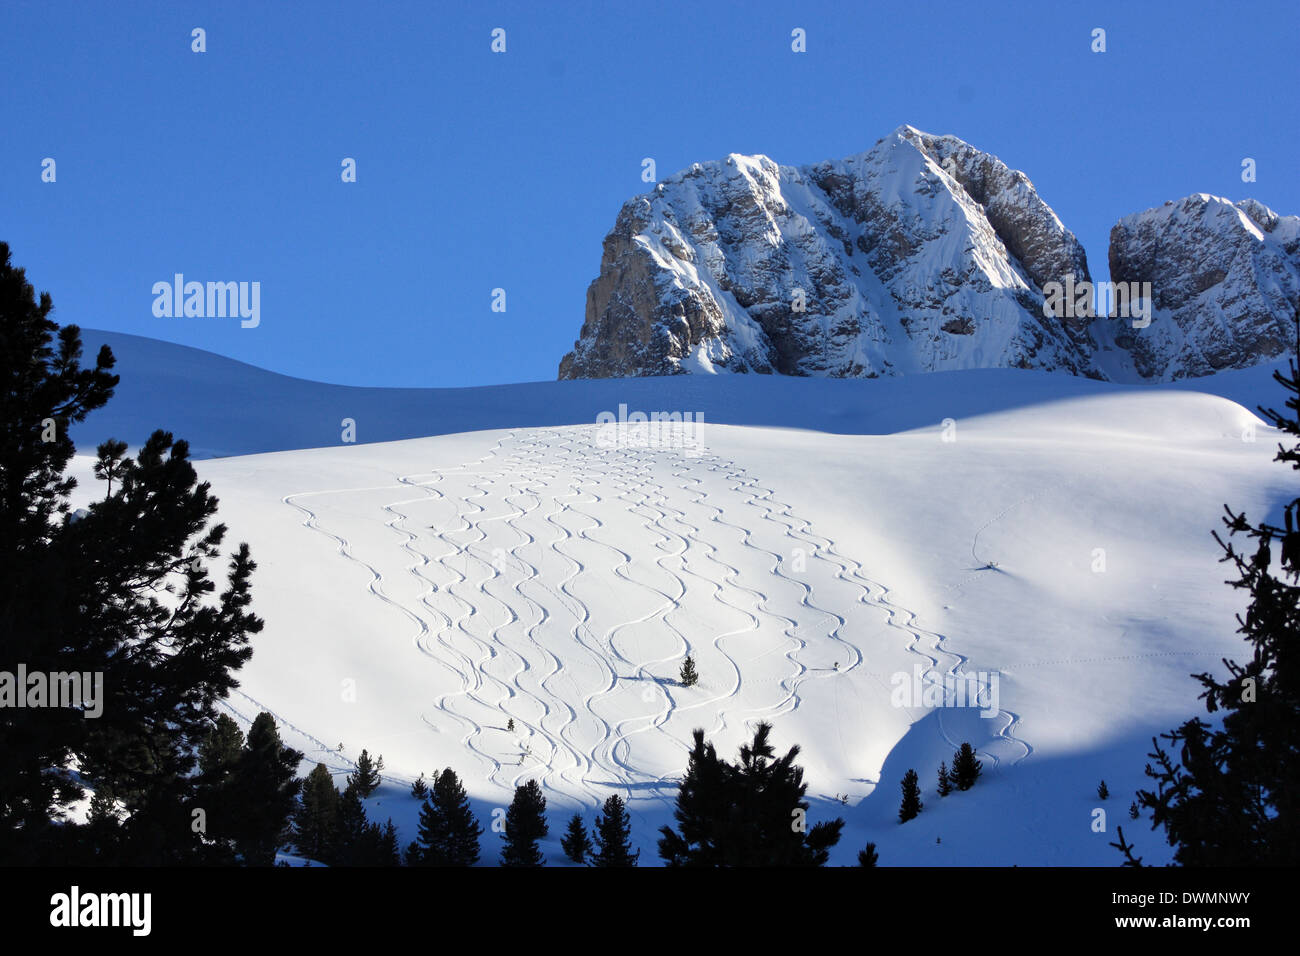 Sci tracks at Seiser Alm / Alpe di Siusi, South Tyrol / Alto Adige, Italy - Stock Image